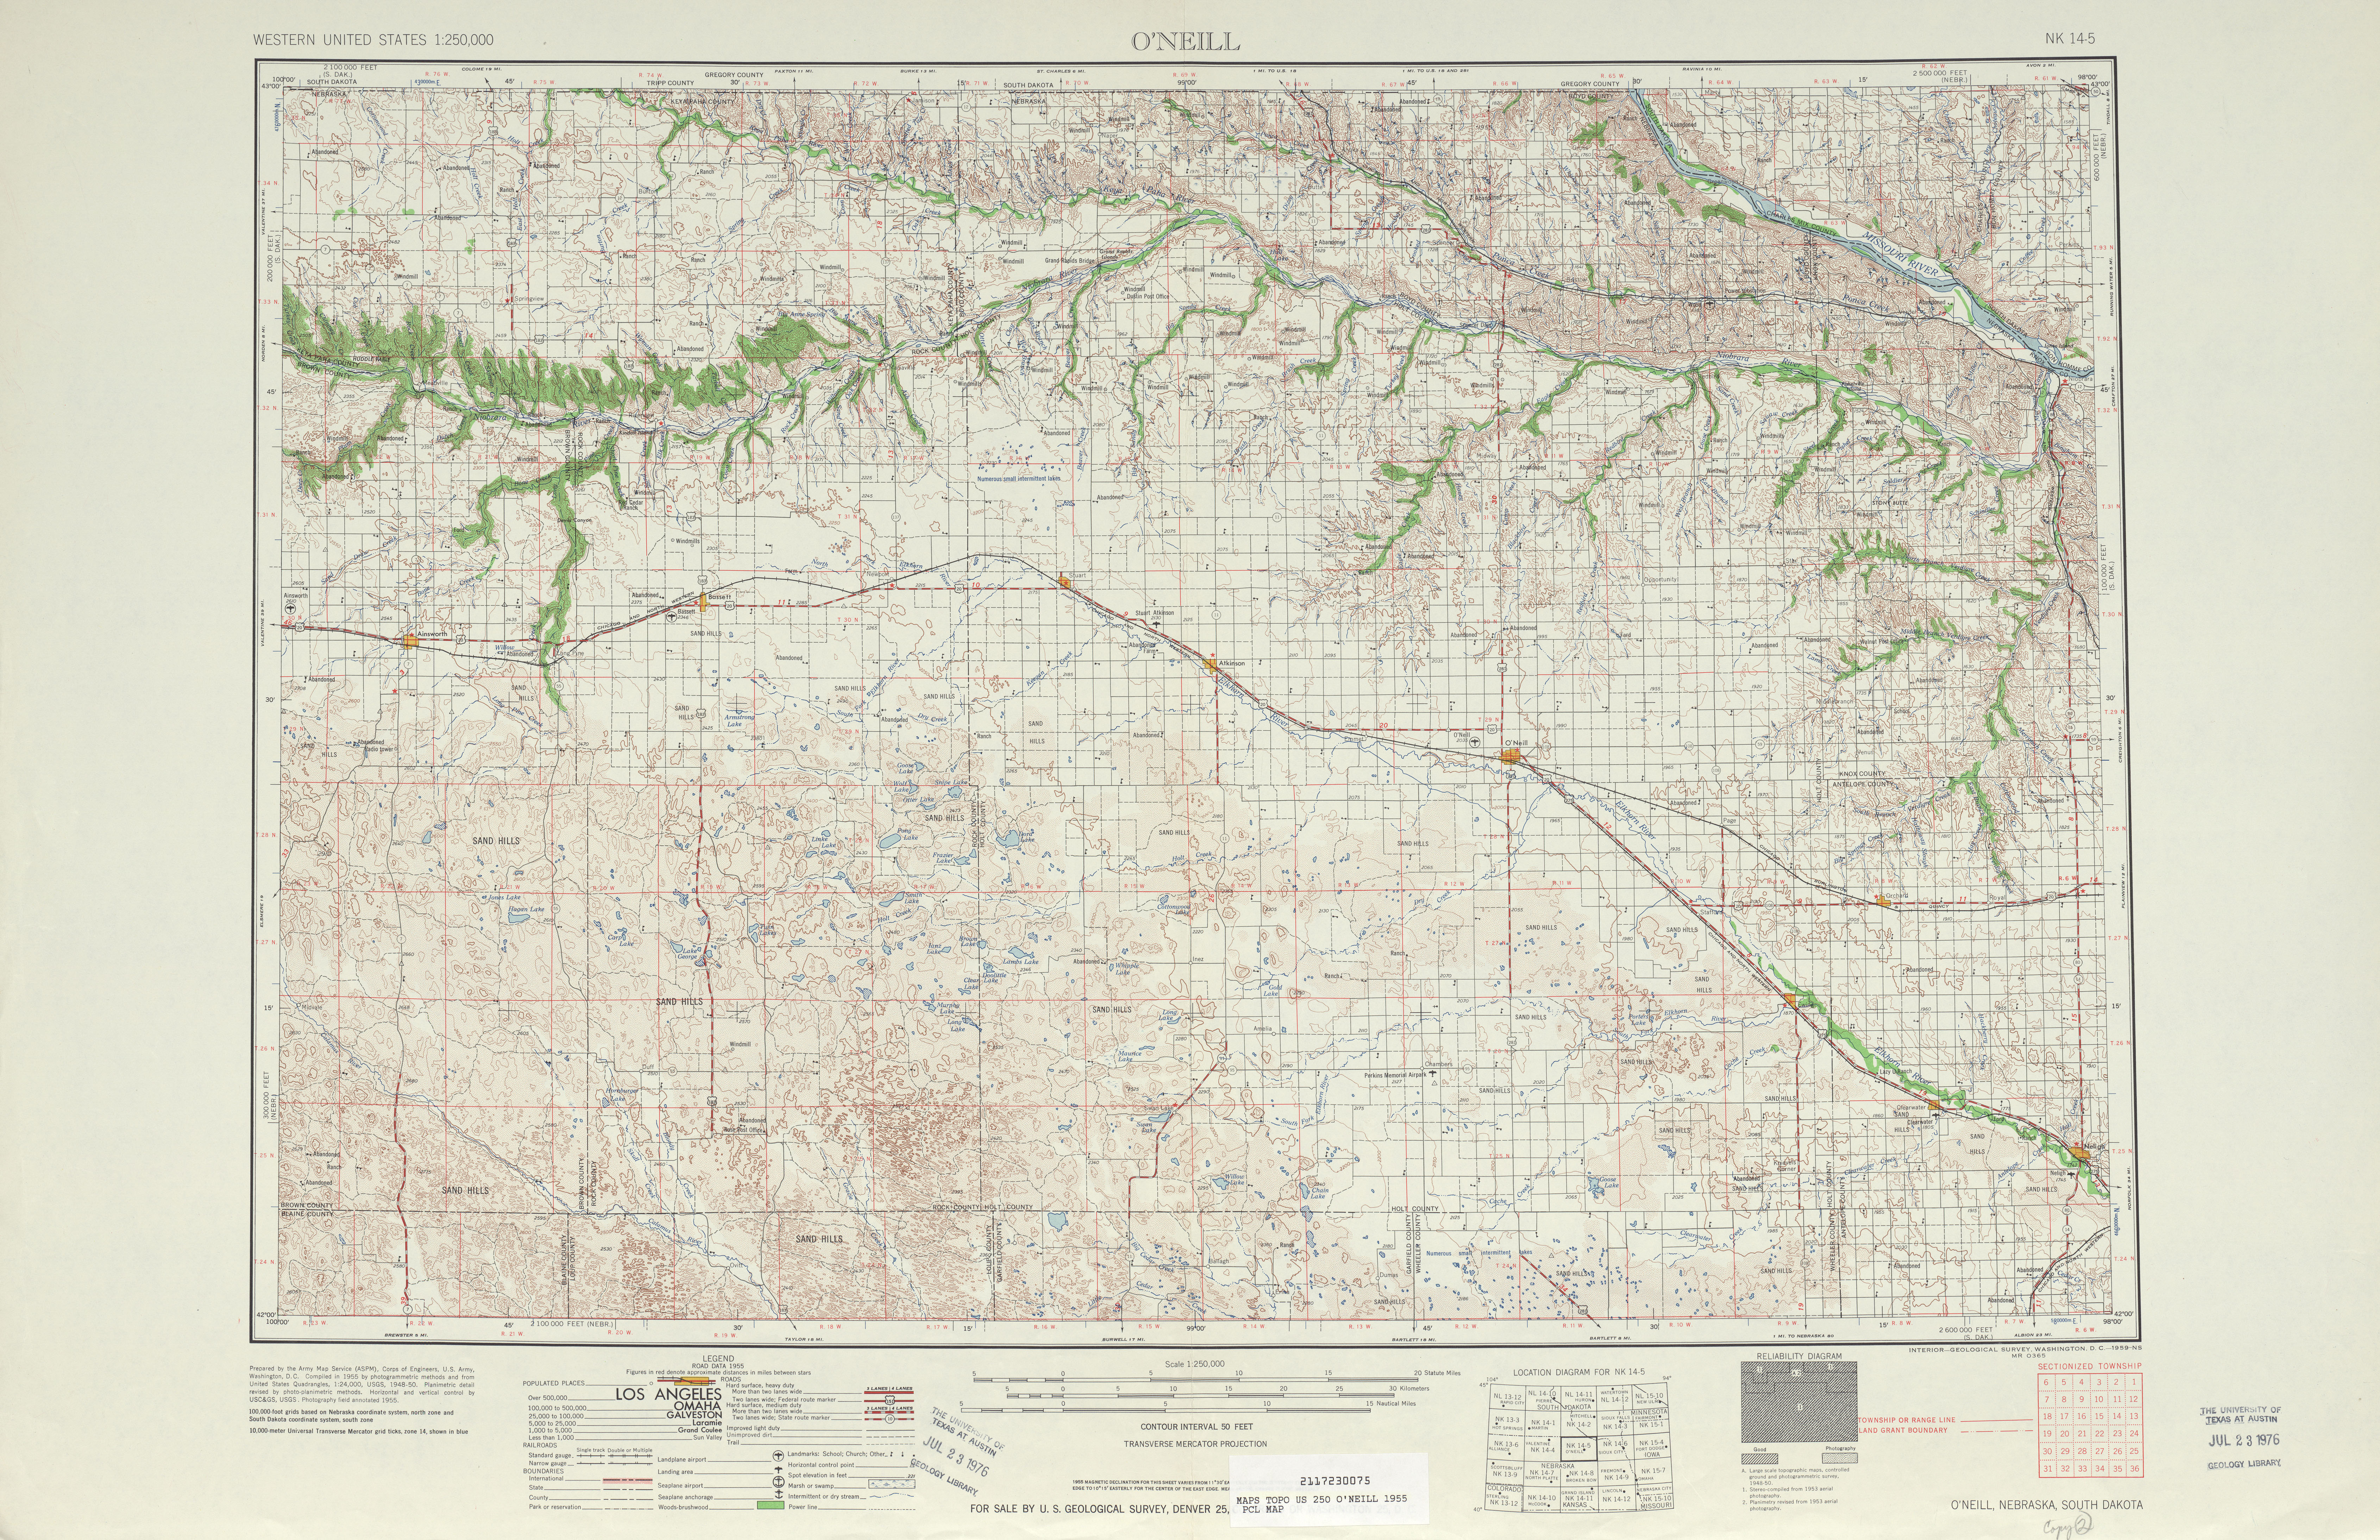 O'neill Topographic Map Sheet, United States 1955